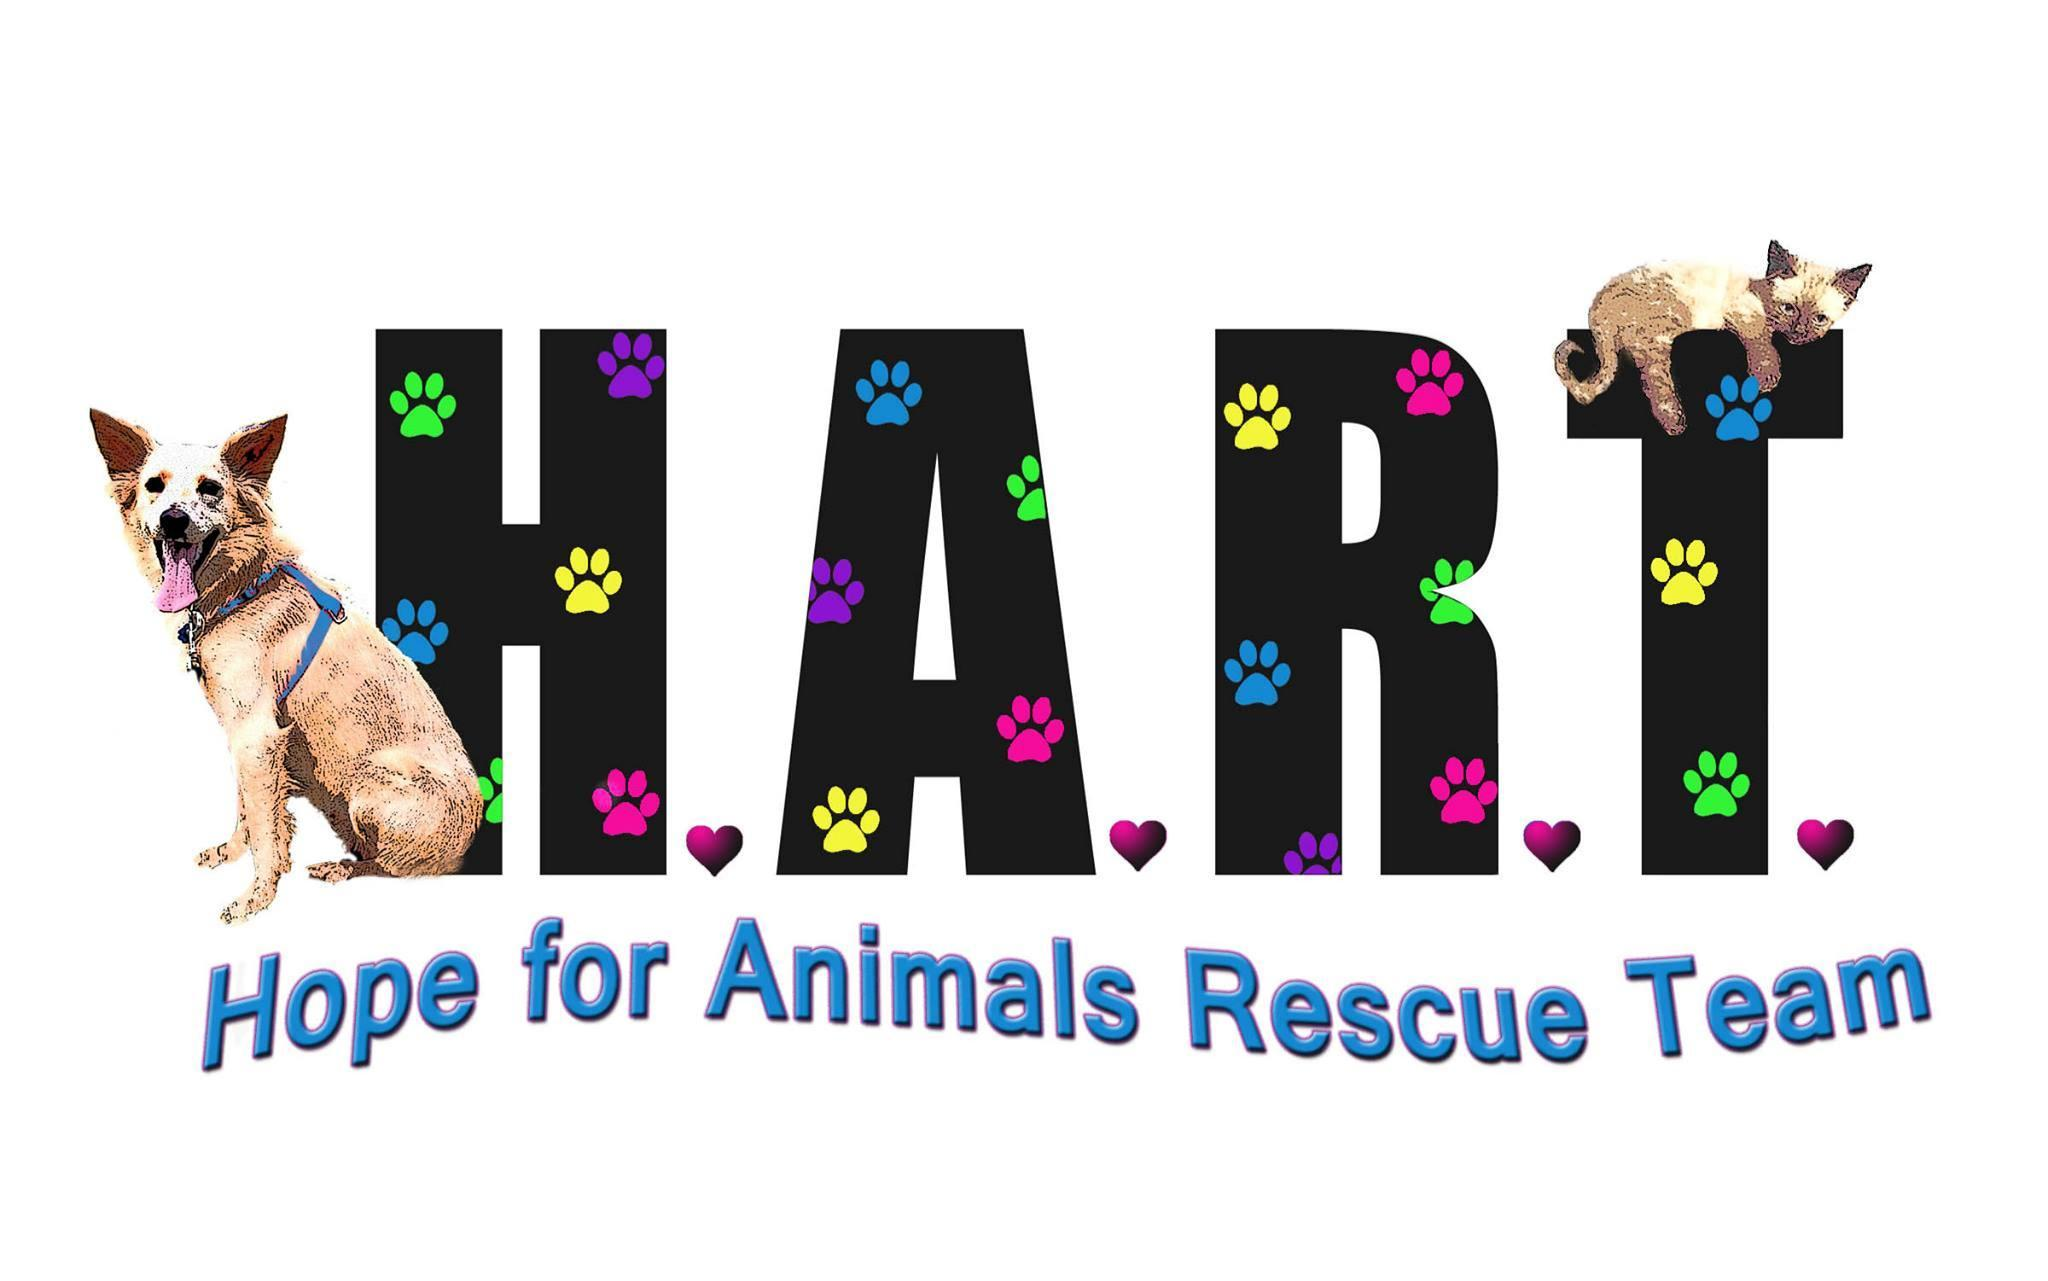 Hope for Animals Rescue Team